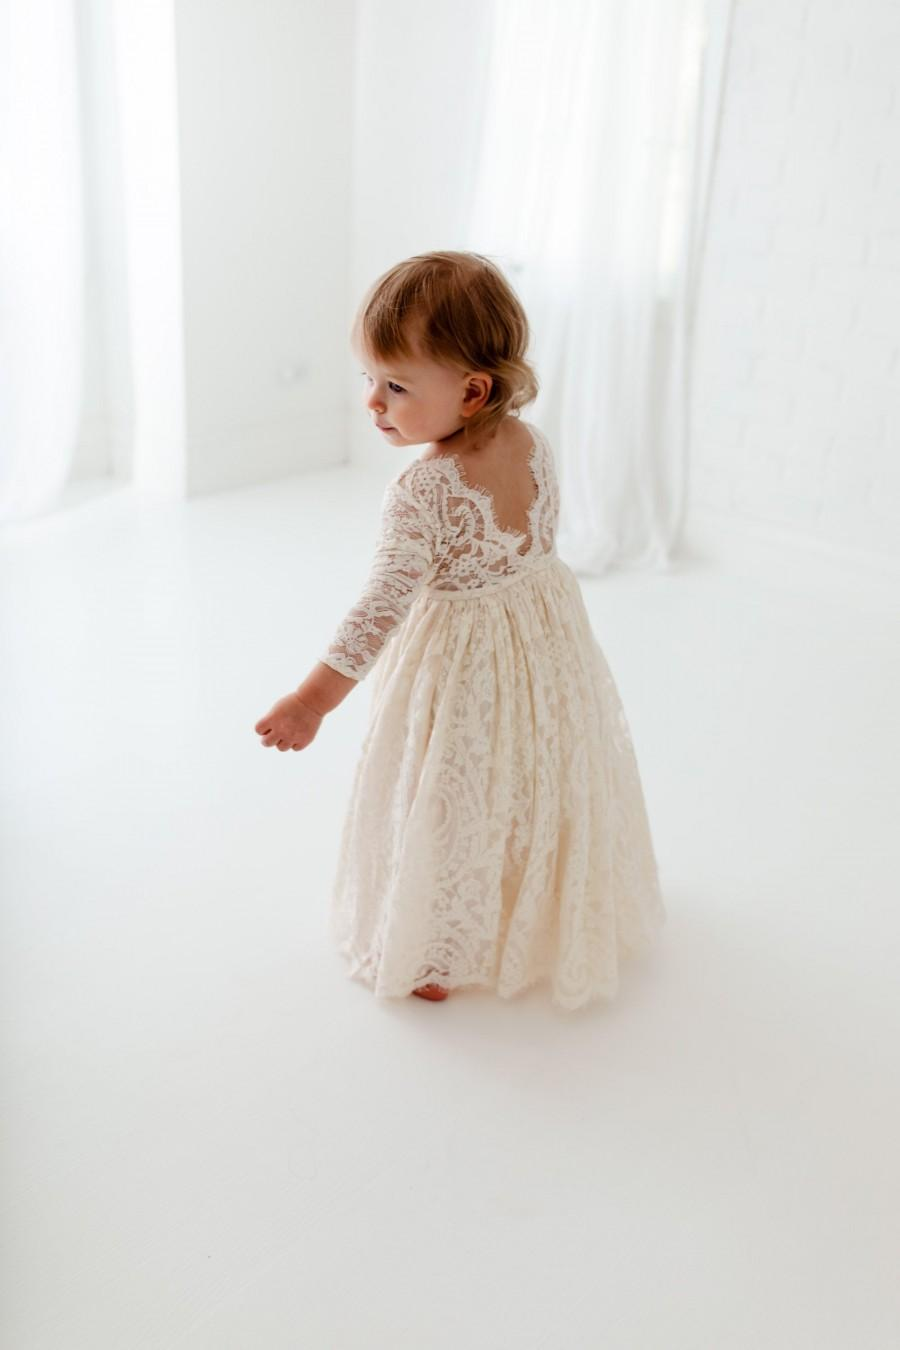 Hochzeit - Boho Lace Flower Girl Dress, Rustic Ivory Wedding Dress, Will You Be My Flower Girl Proposal, Bohemian Dresses